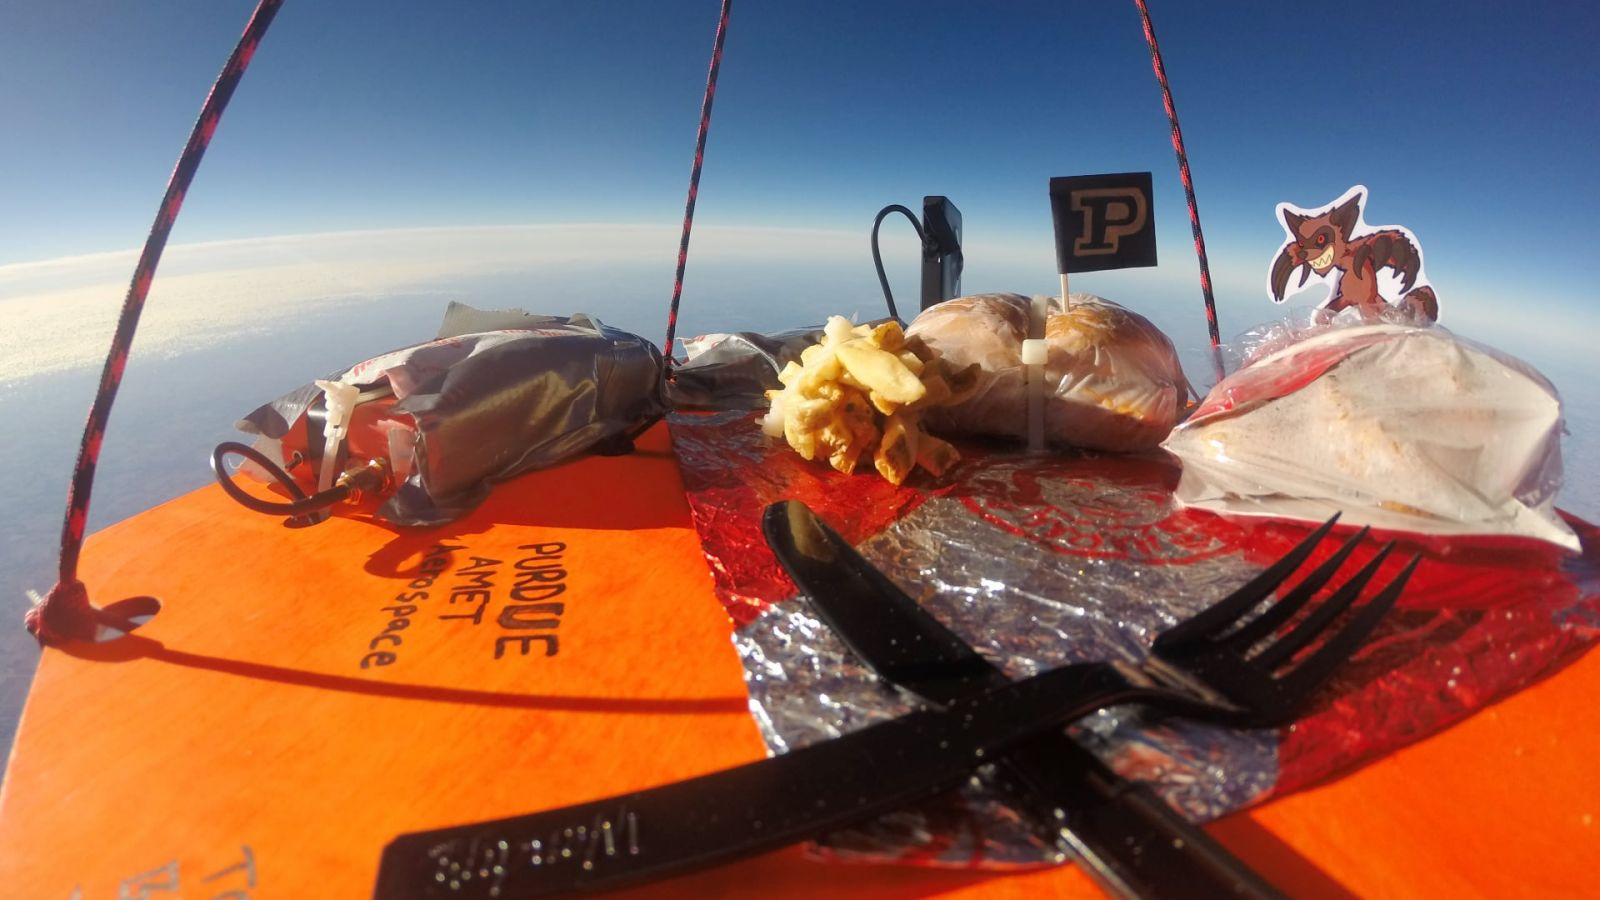 Students in Purdue AMET (Association for Mechanical and Electrical Technologists) lofted a high-altitude weather balloon with a Wendy's Baconator and French fries to 95,000 feet. This photo is from 60,000 feet.